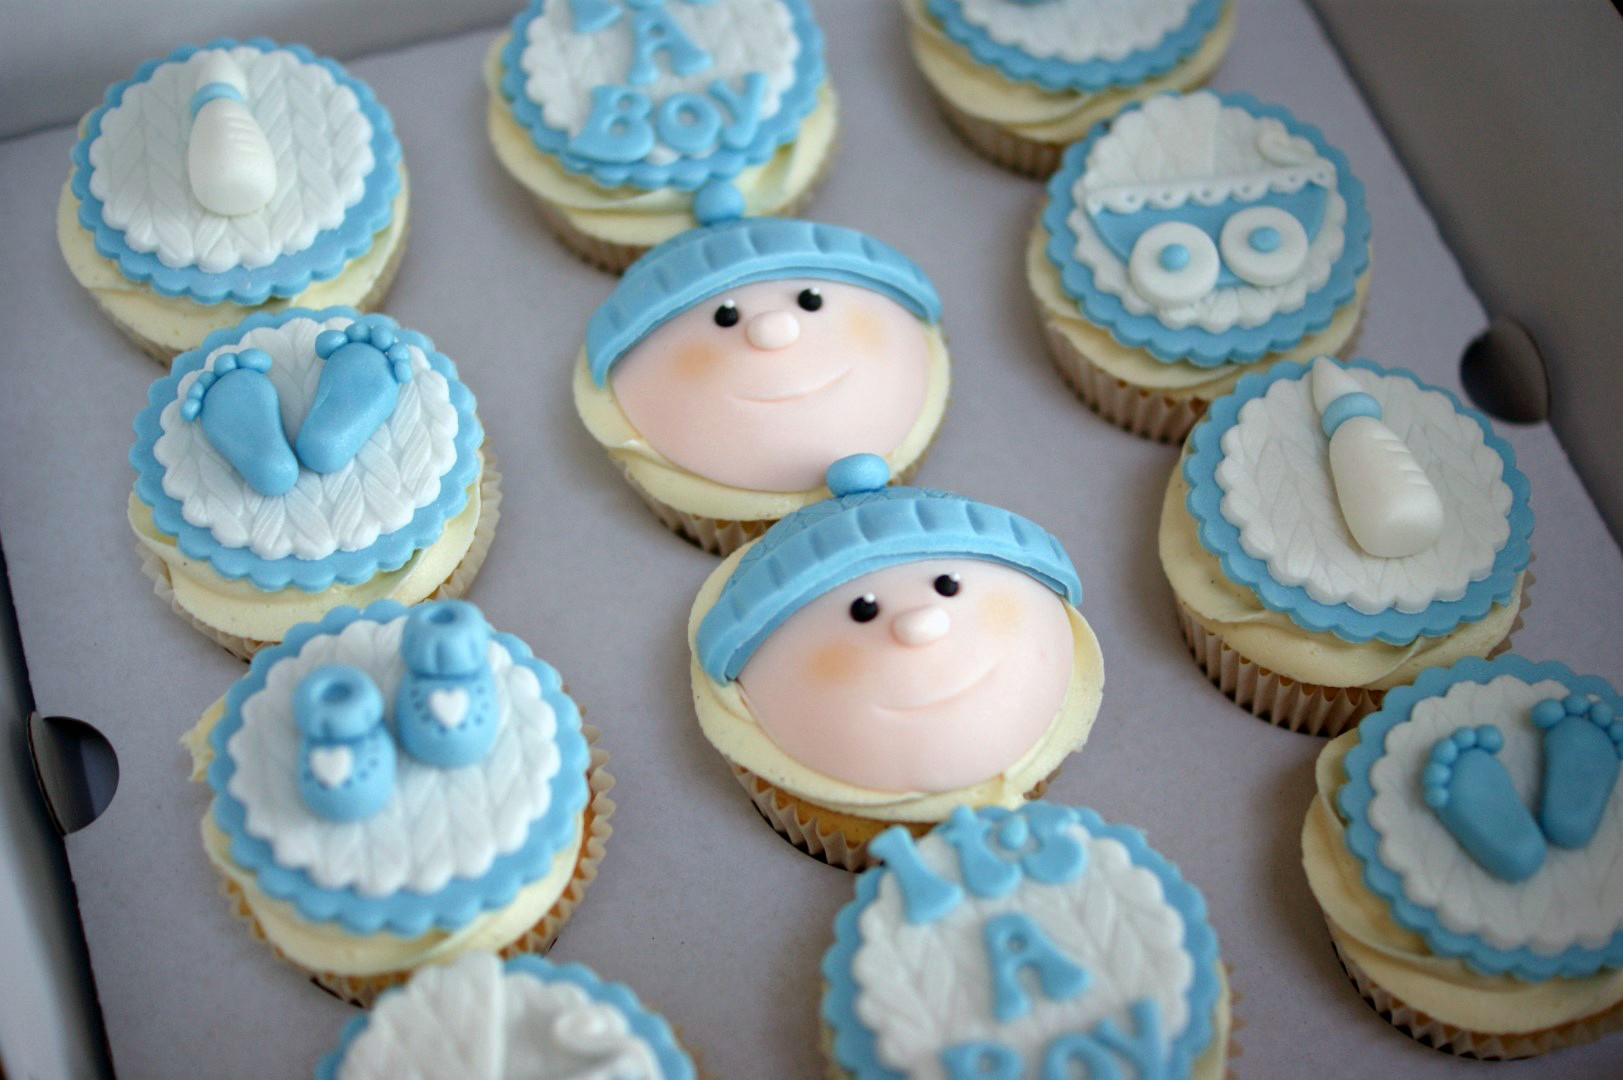 Fancy Baby Shower Cupcakes For Boy - Baby Showers Ideas pertaining to Baby Shower Cupcakes